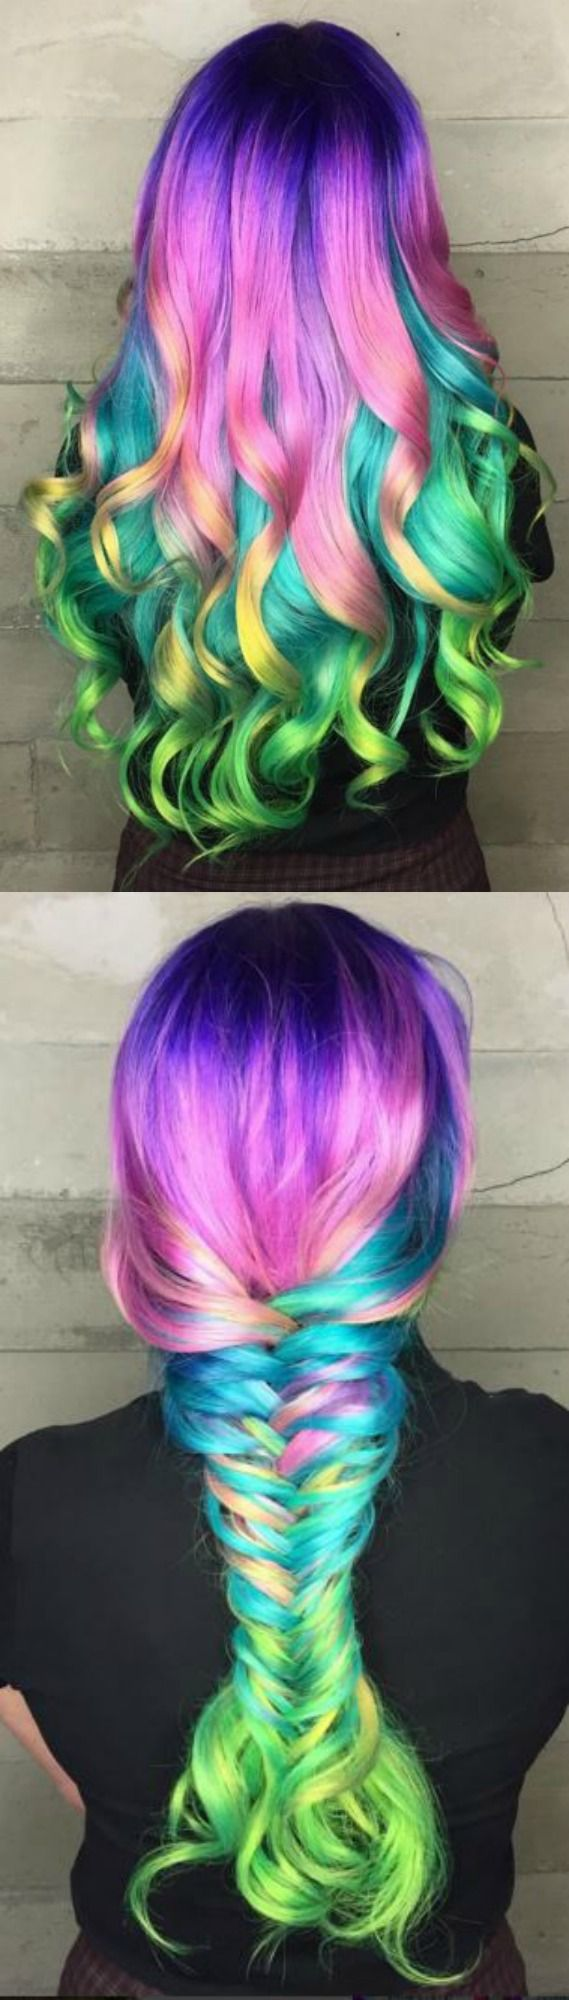 Collage of Multi-Colored Hair in Curls & Big Braid♡ #Hairstyle #Dyed_Hair #Beauty